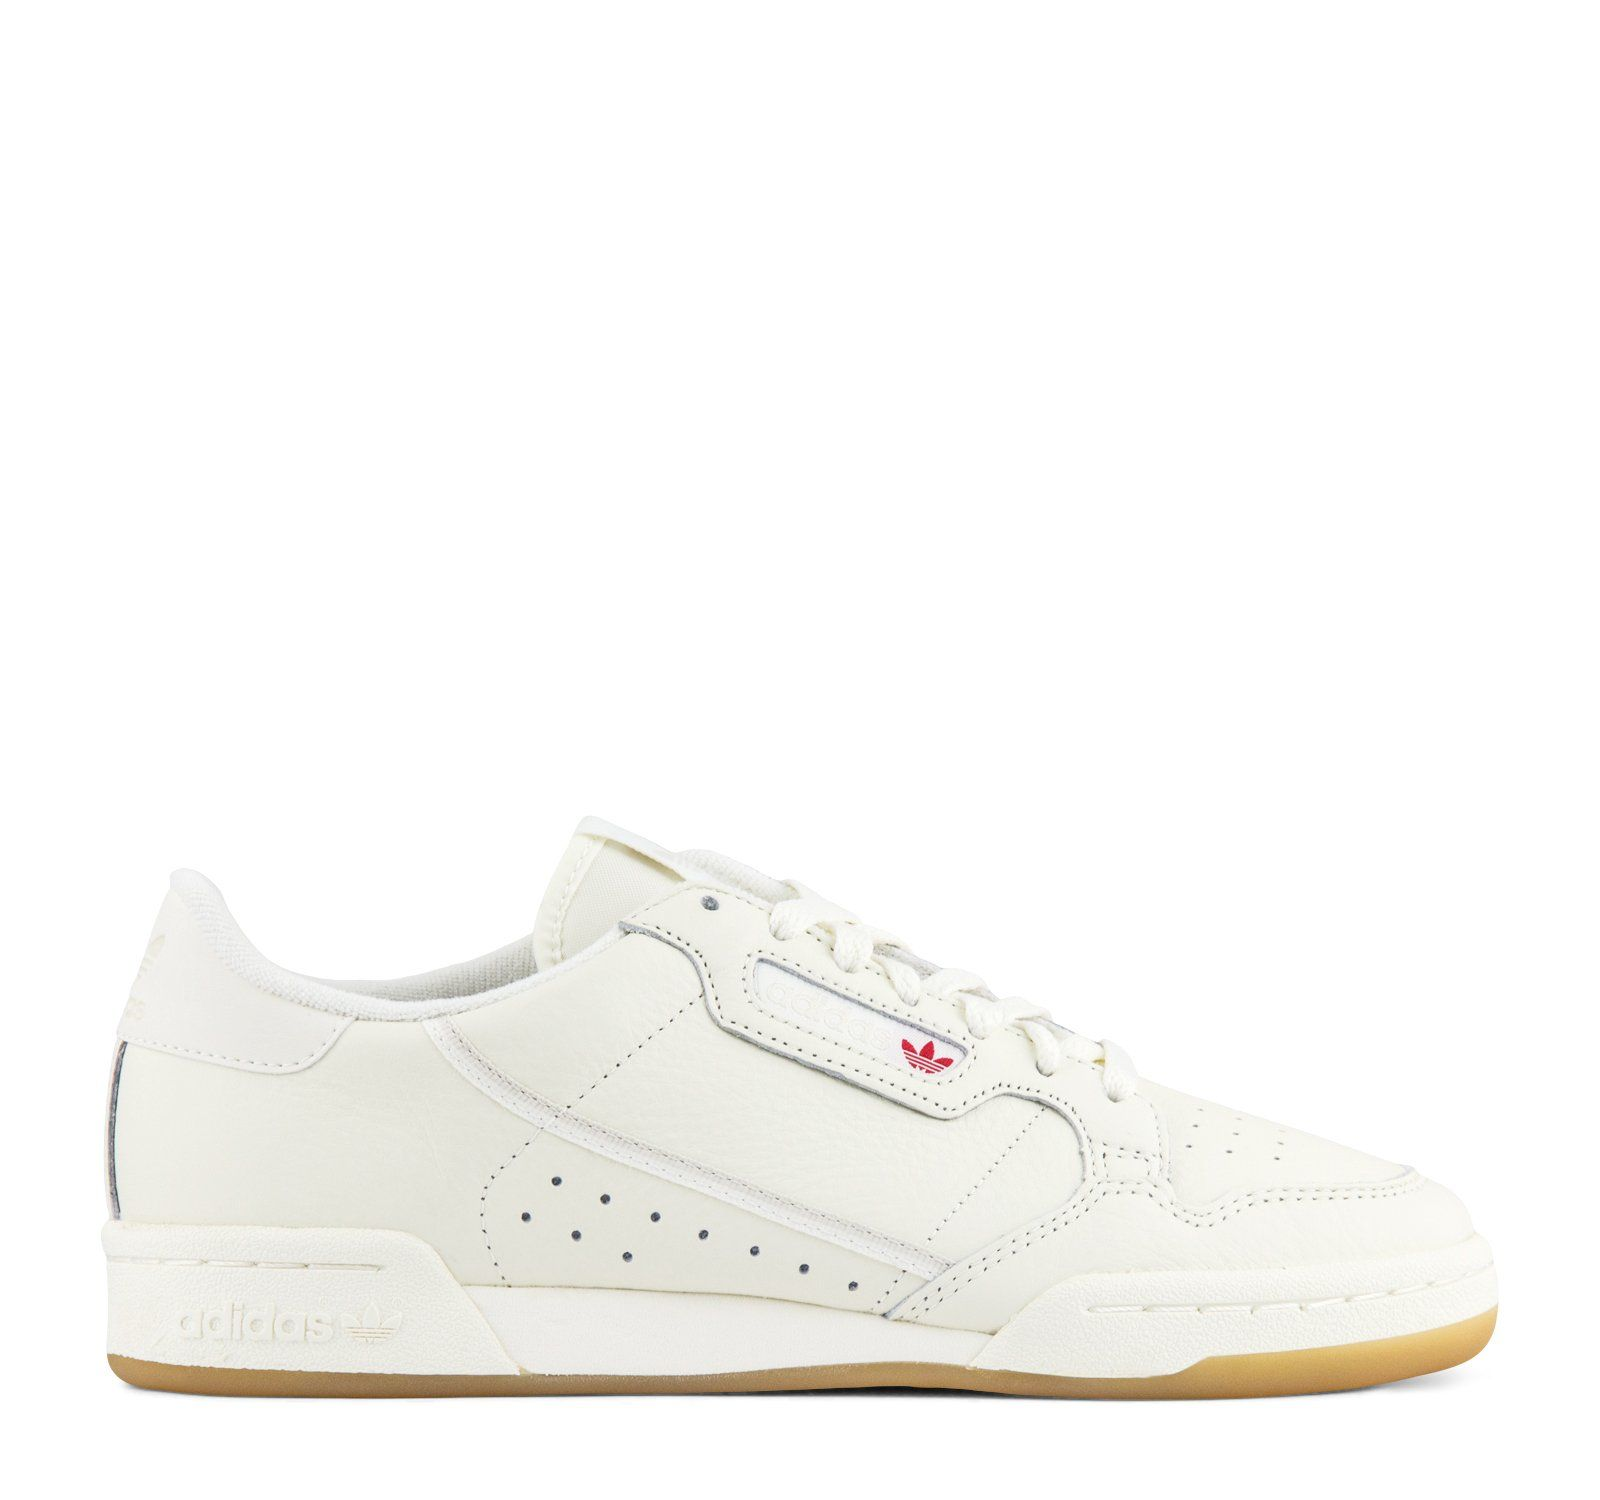 Adidas Continental 80 Men S Sneaker In Off White And Gum Sneakers Sneakers Men Leather